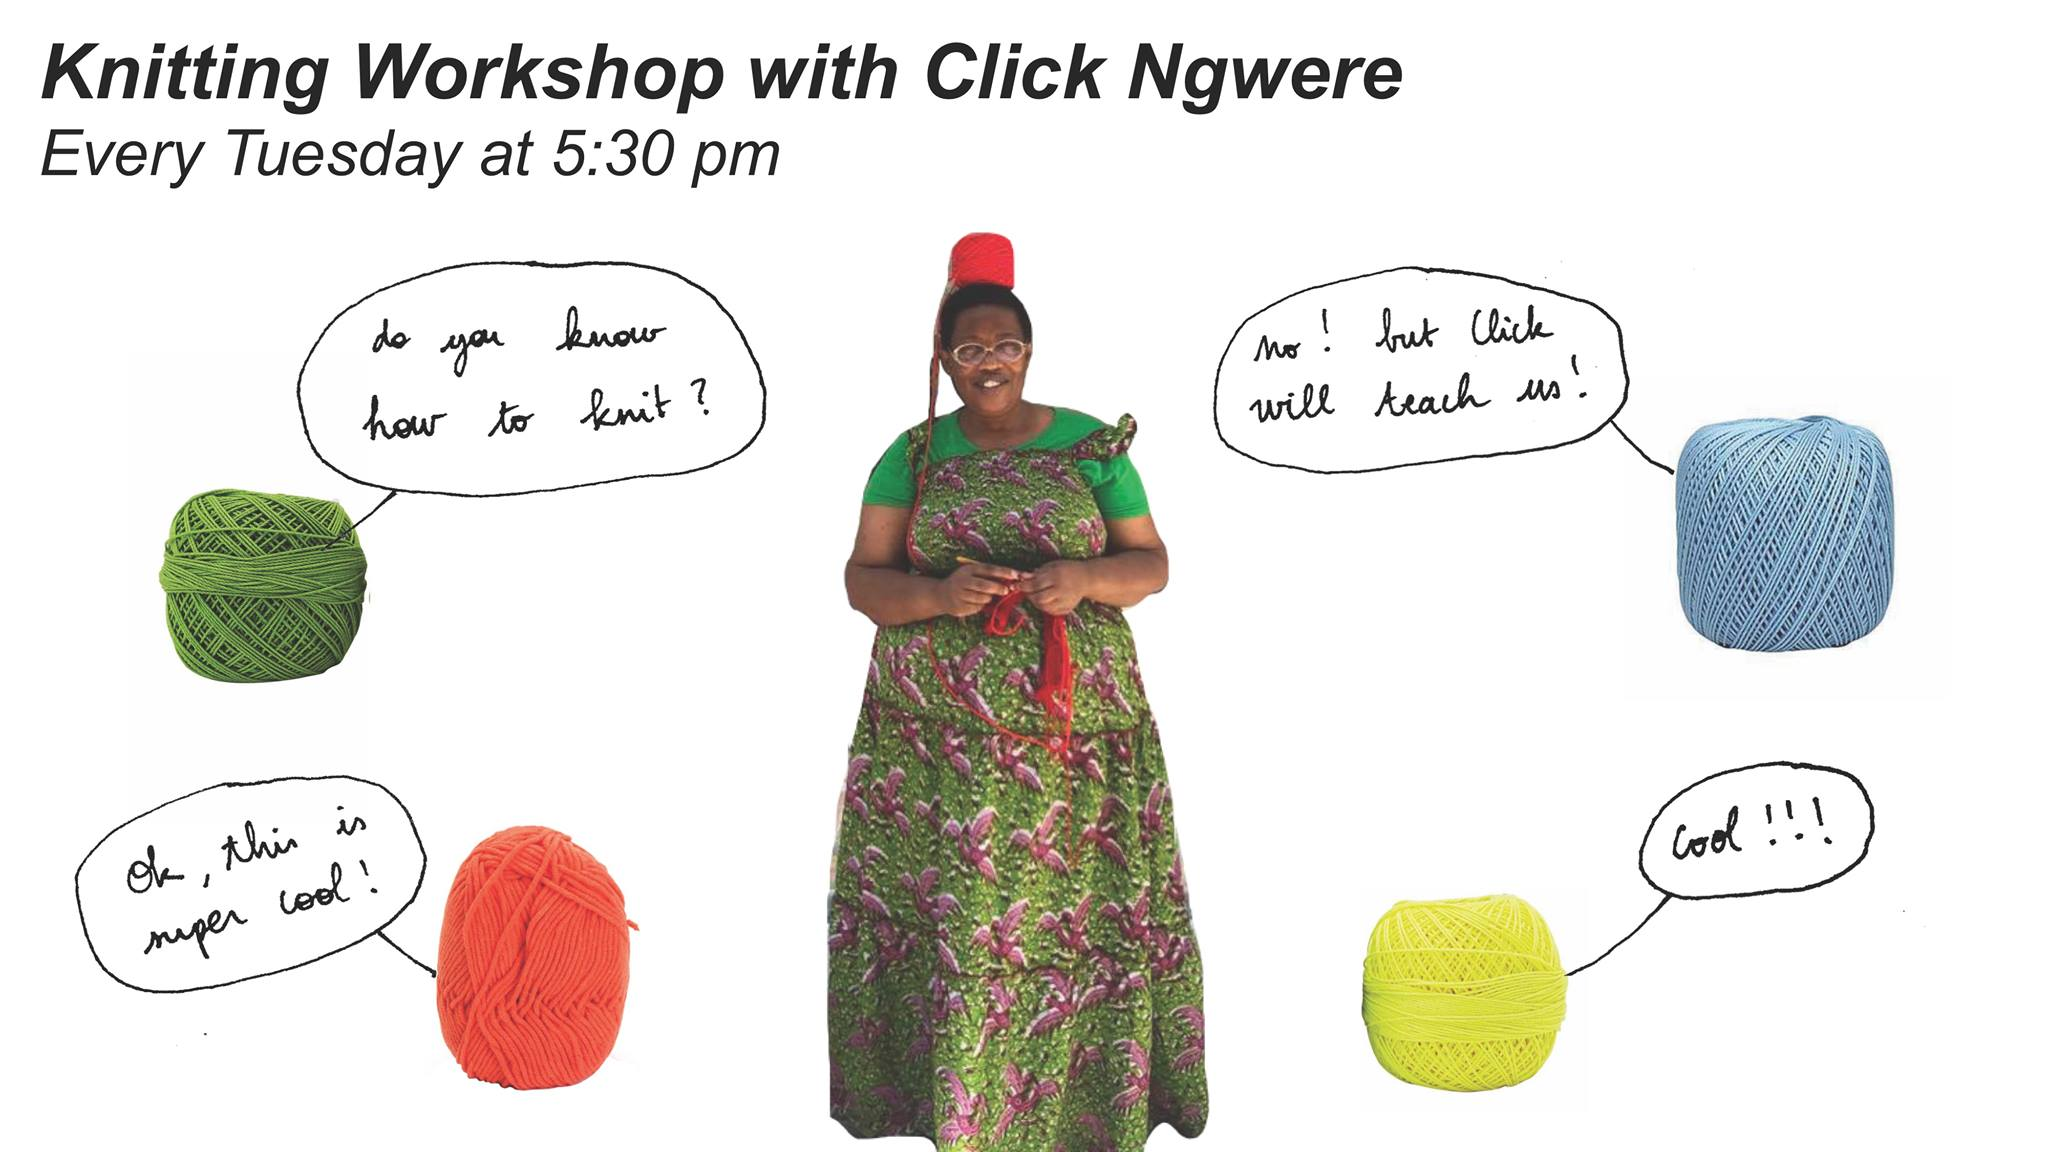 Knitting Workshop with Click Ngwere